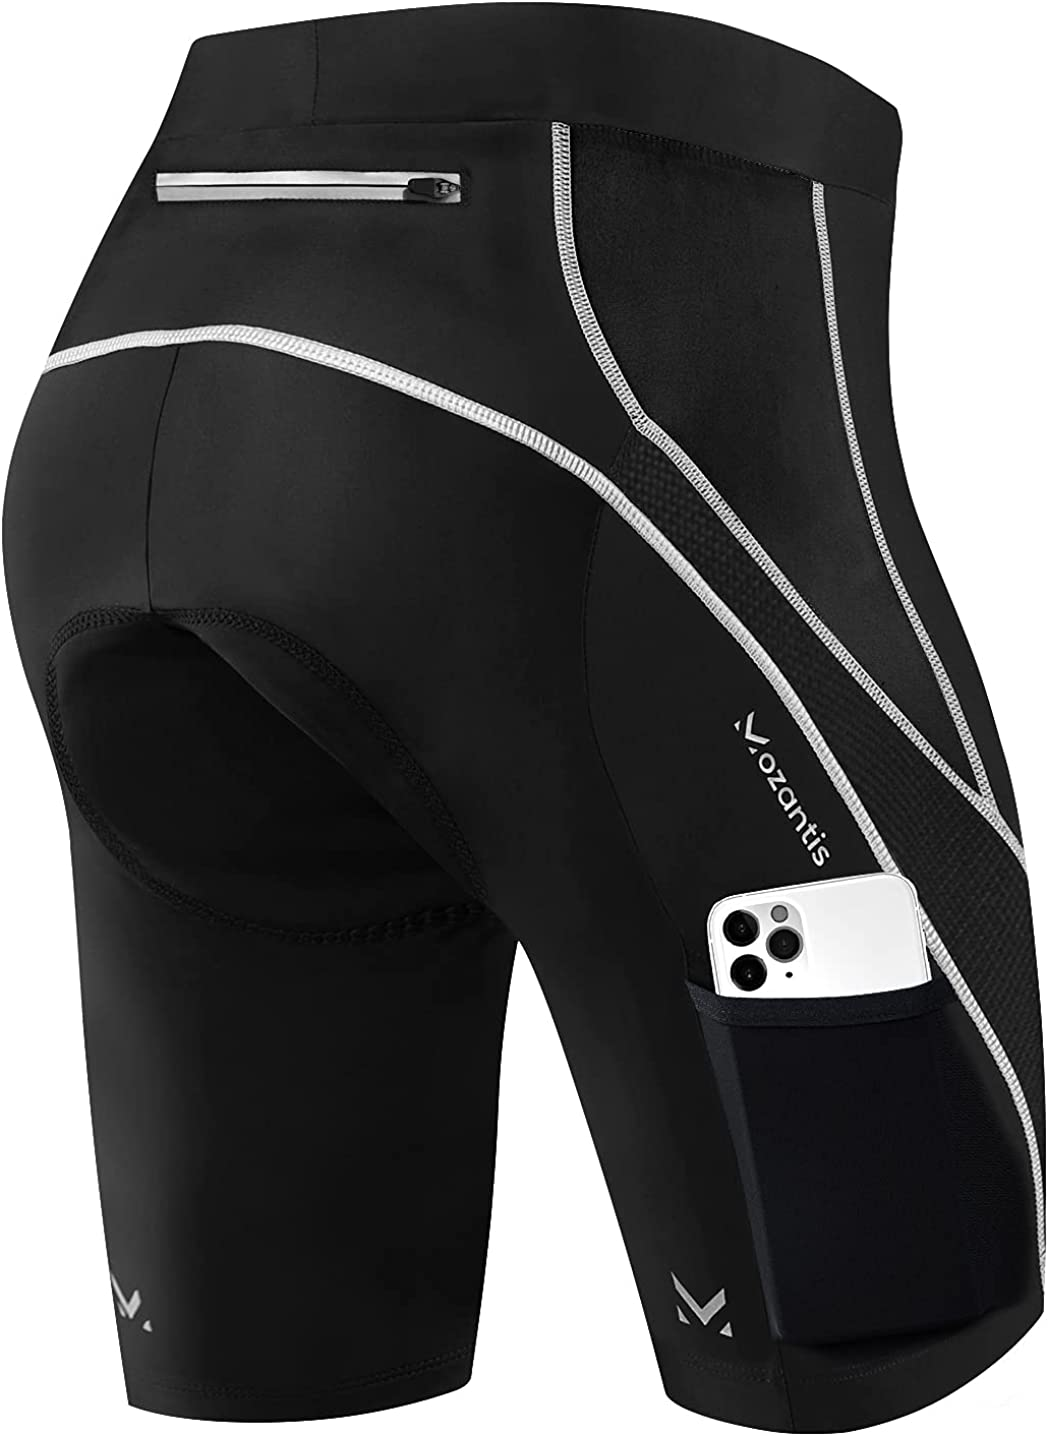 Colorado Springs Mall Mozantis Womens Bike Shorts 3D Gel Wide with Padded Po New item Waistband